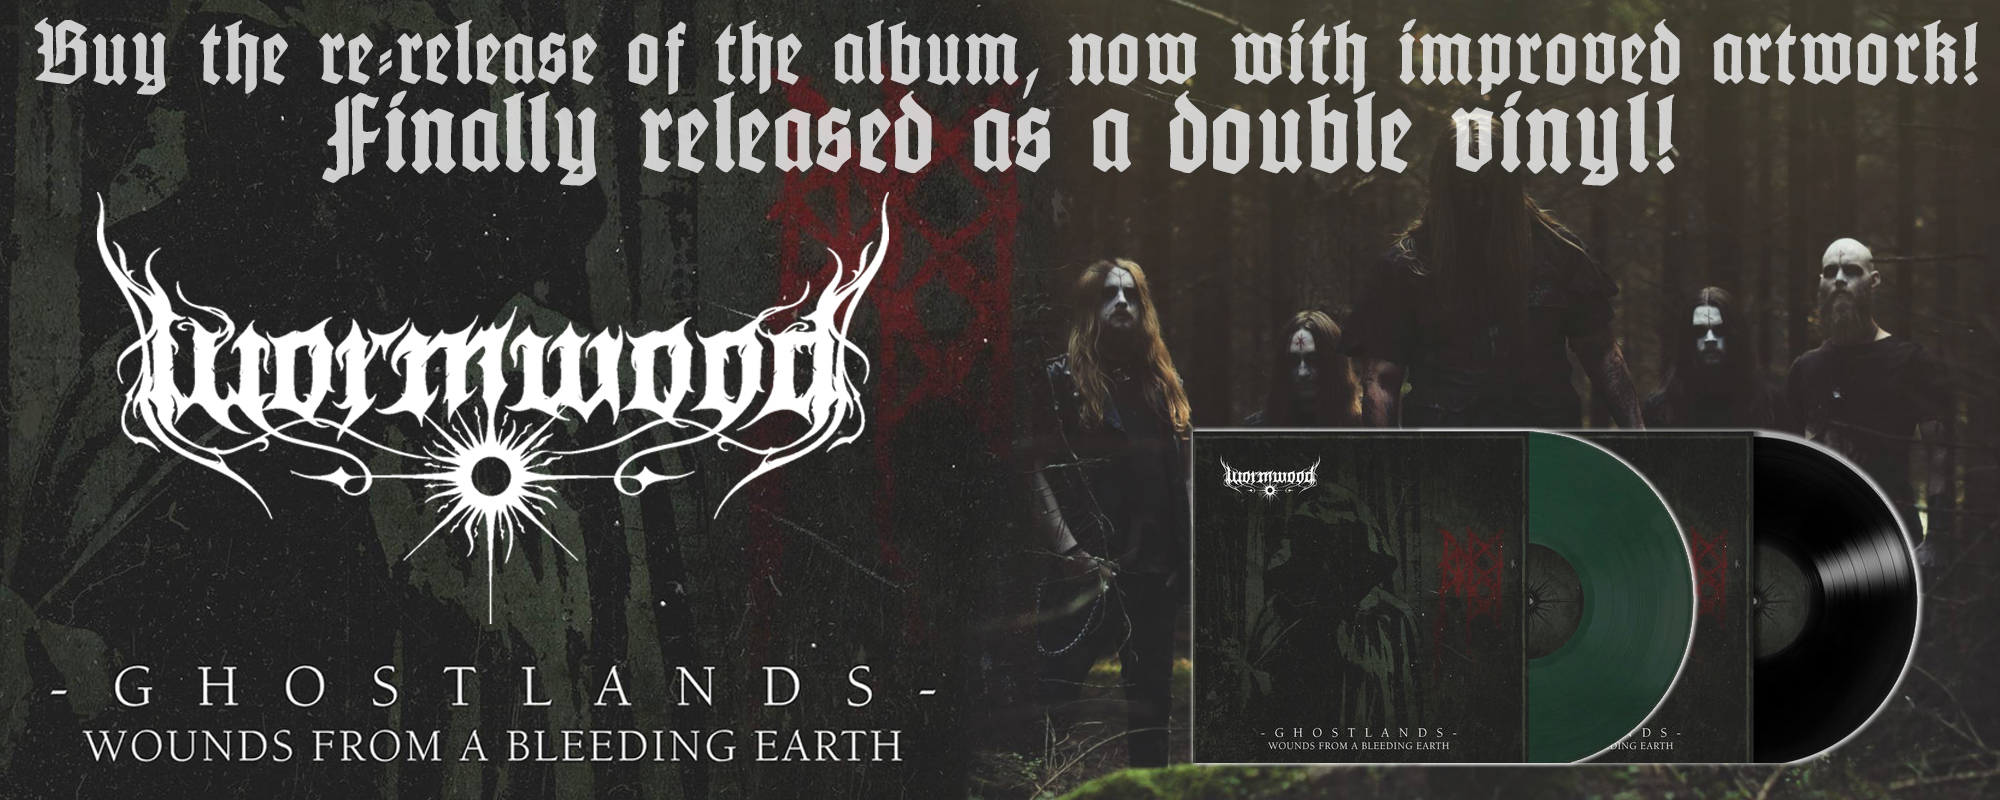 WORMWOOD - Ghostlands - Wounds From a Bleeding